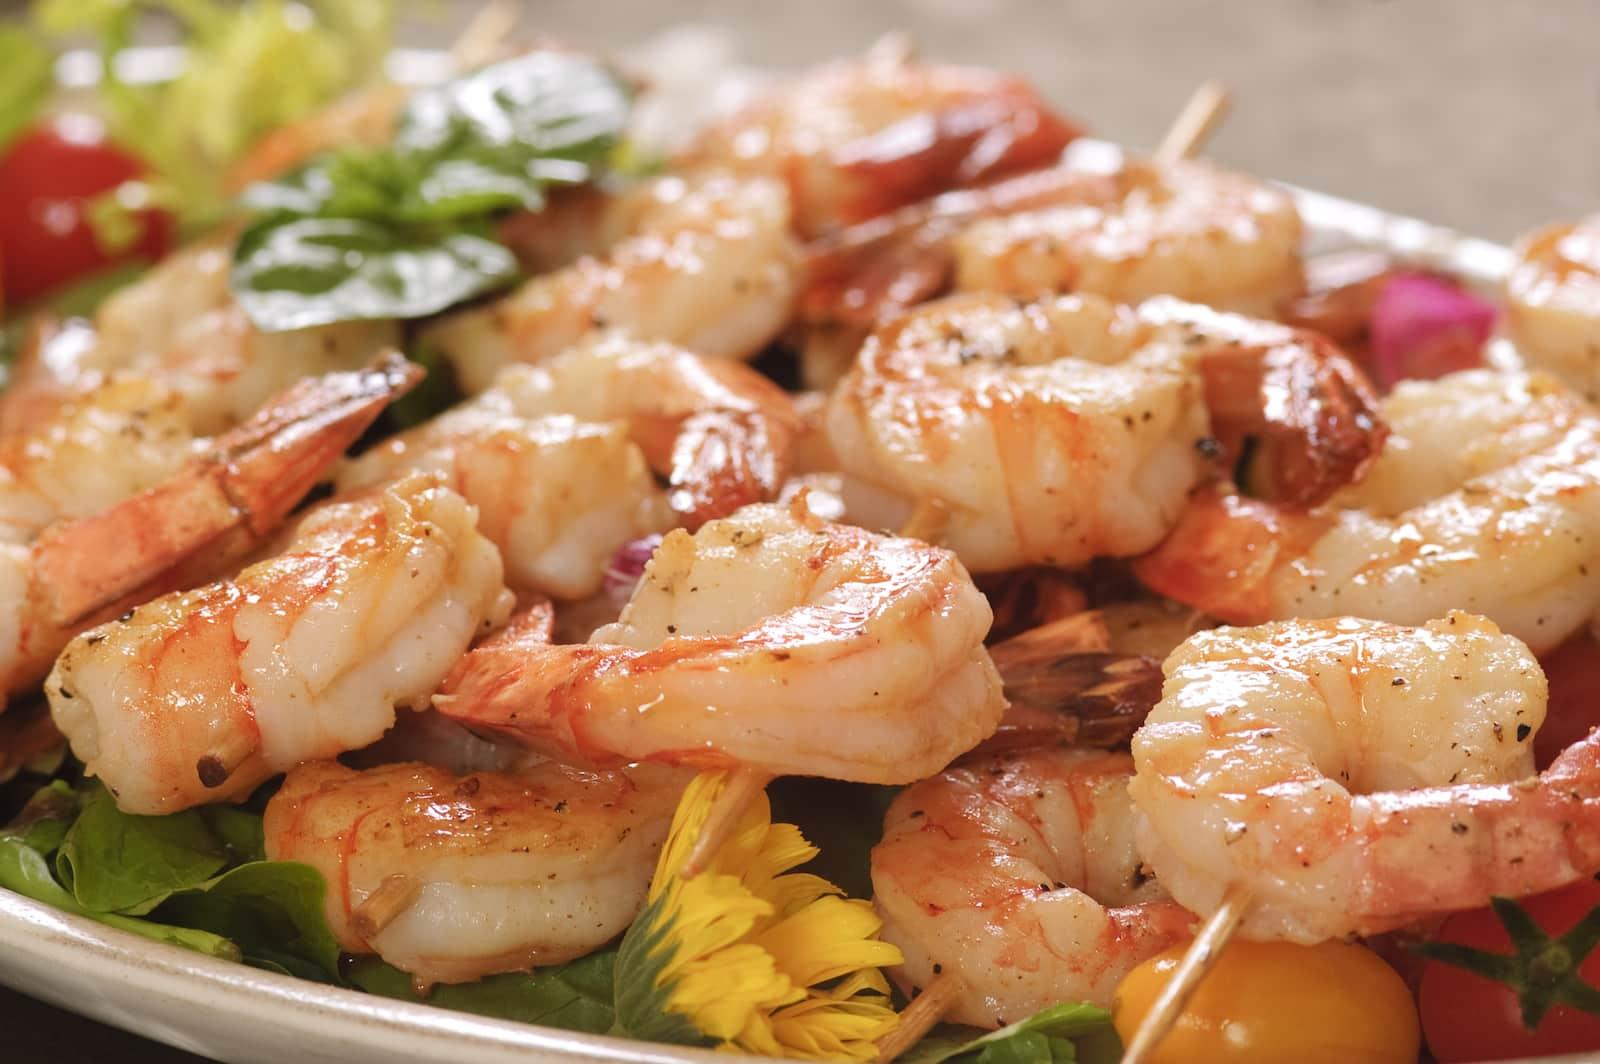 Which Spices Go Well With Shrimp?